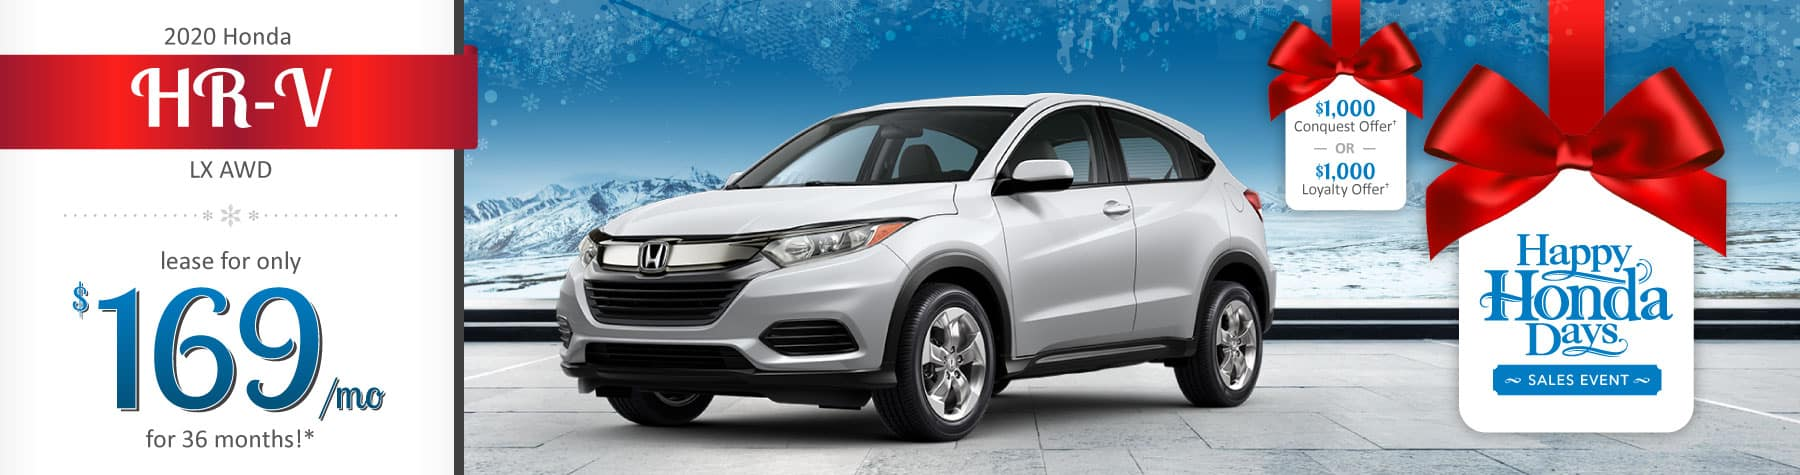 Header Photo of the 2020 Honda HR-V